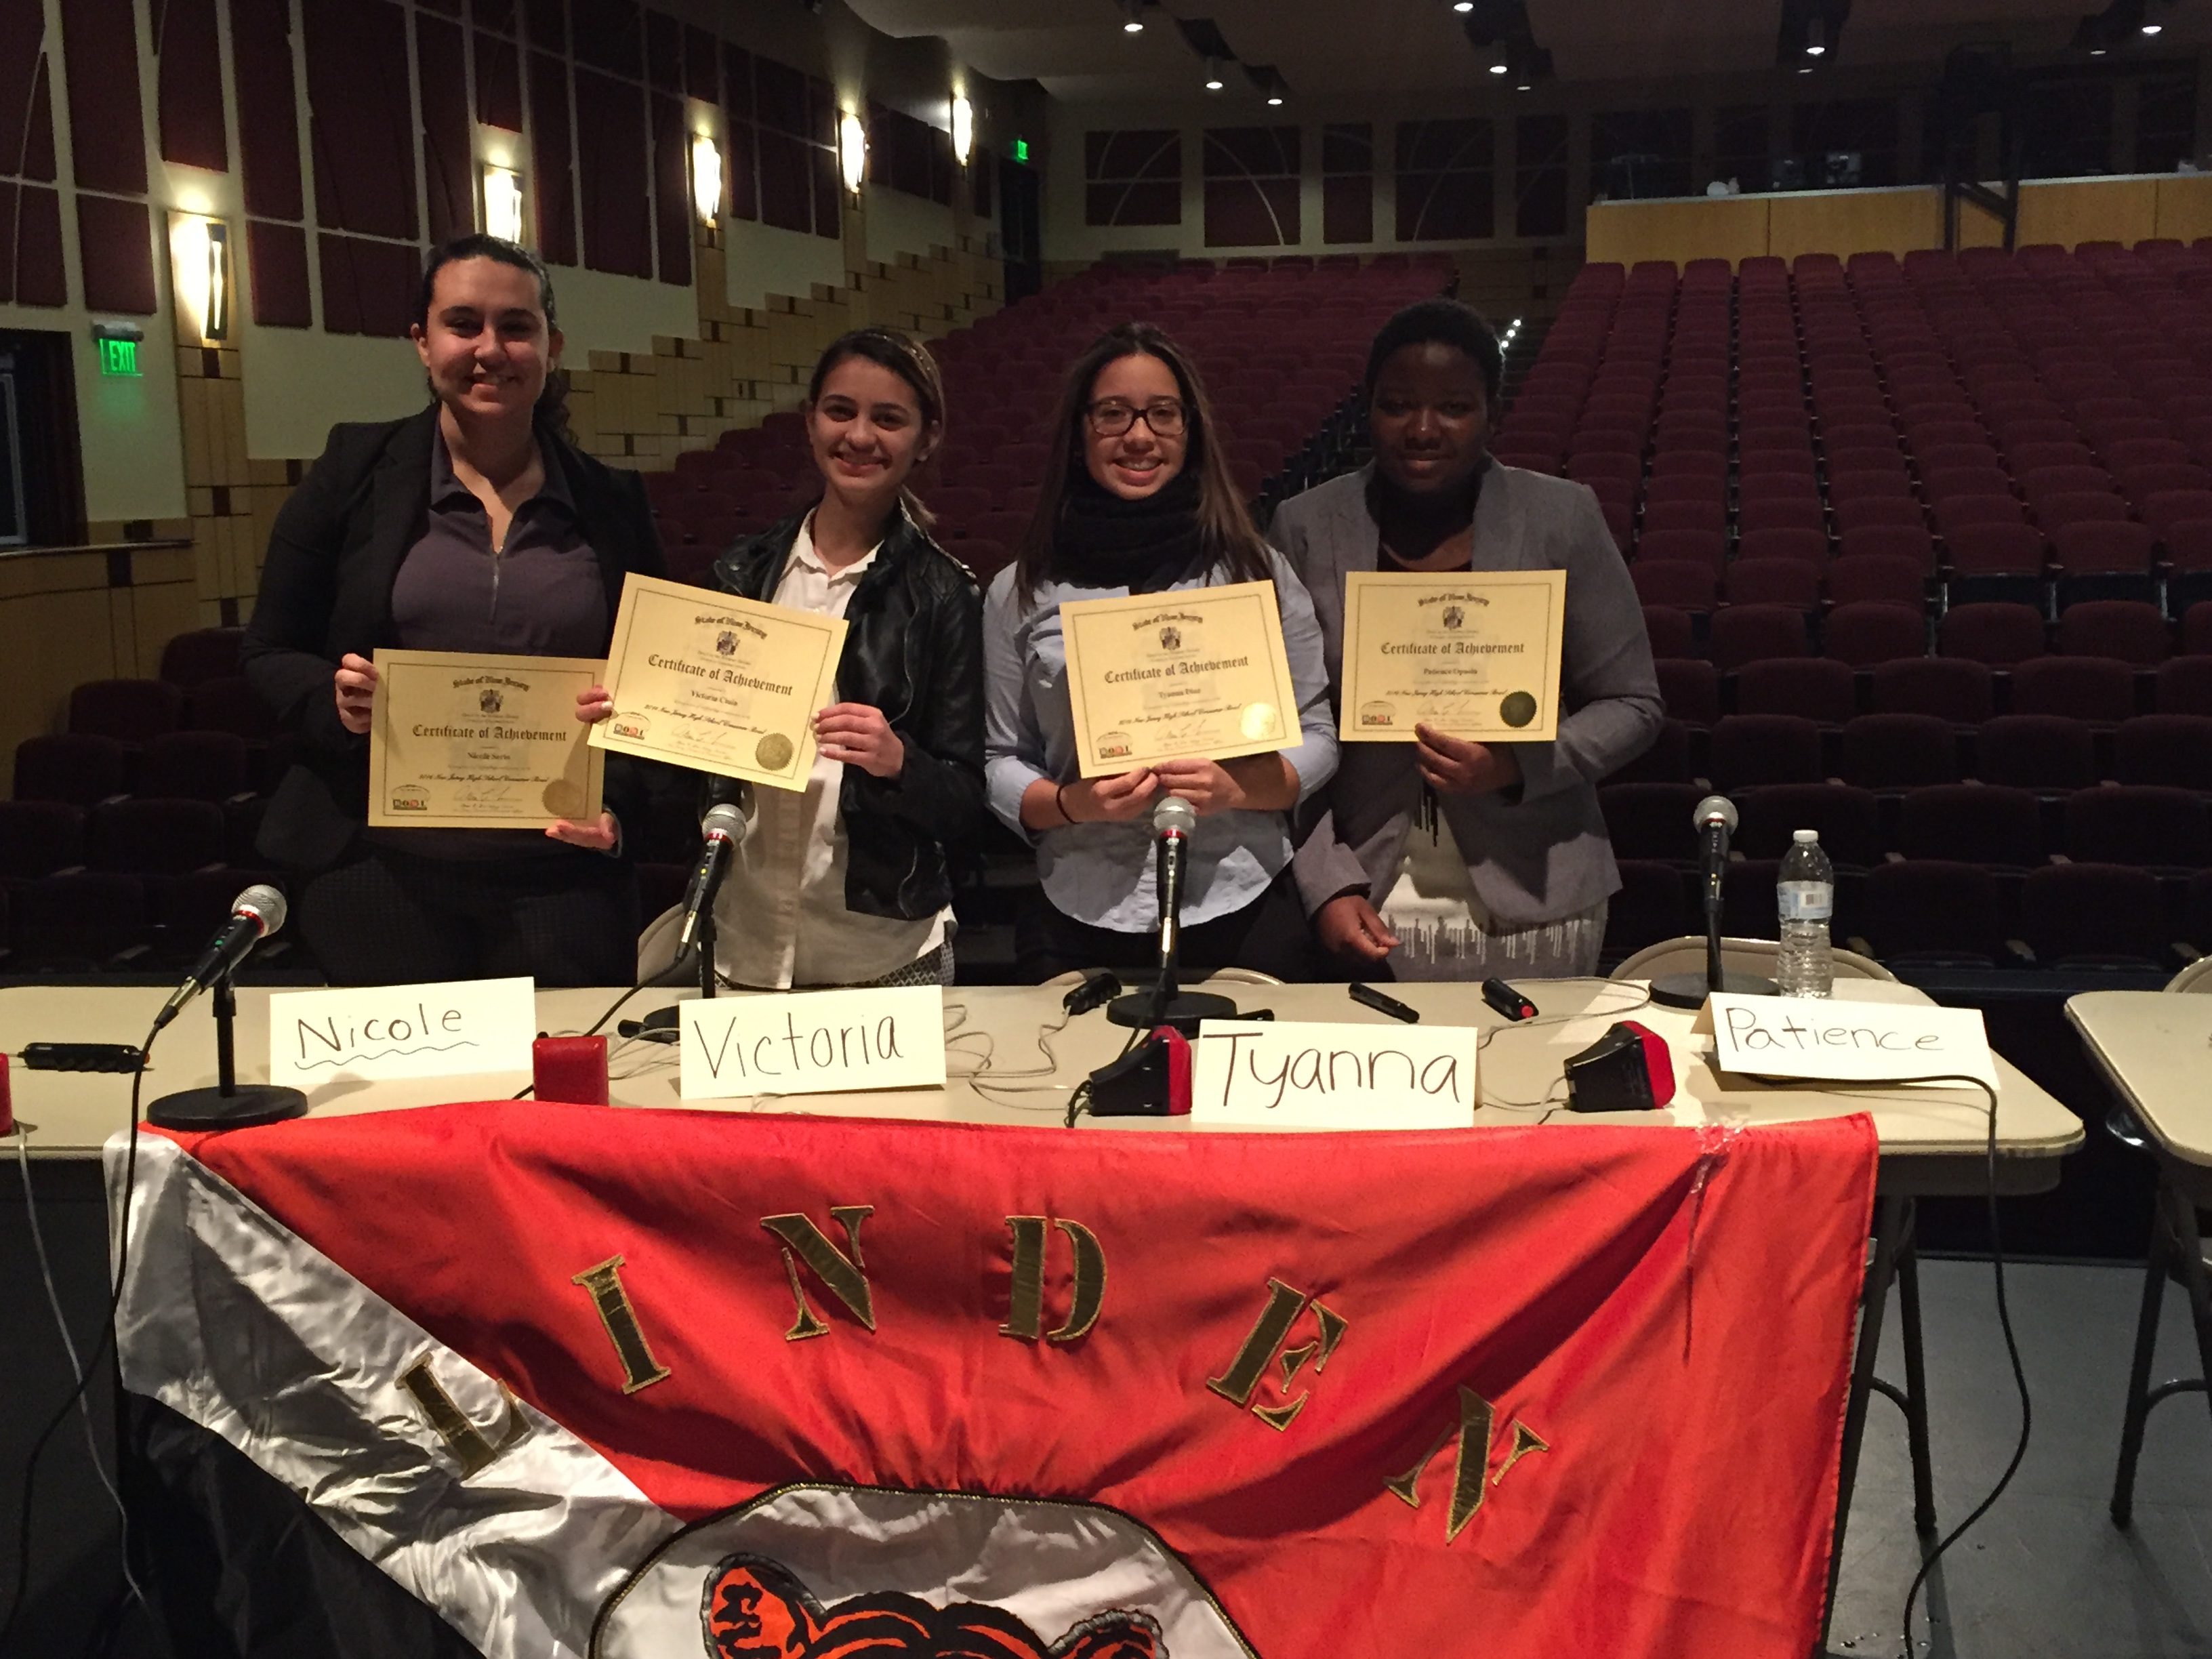 Congratulations to LHS Consumer Bowl team for 2nd place win in Union County